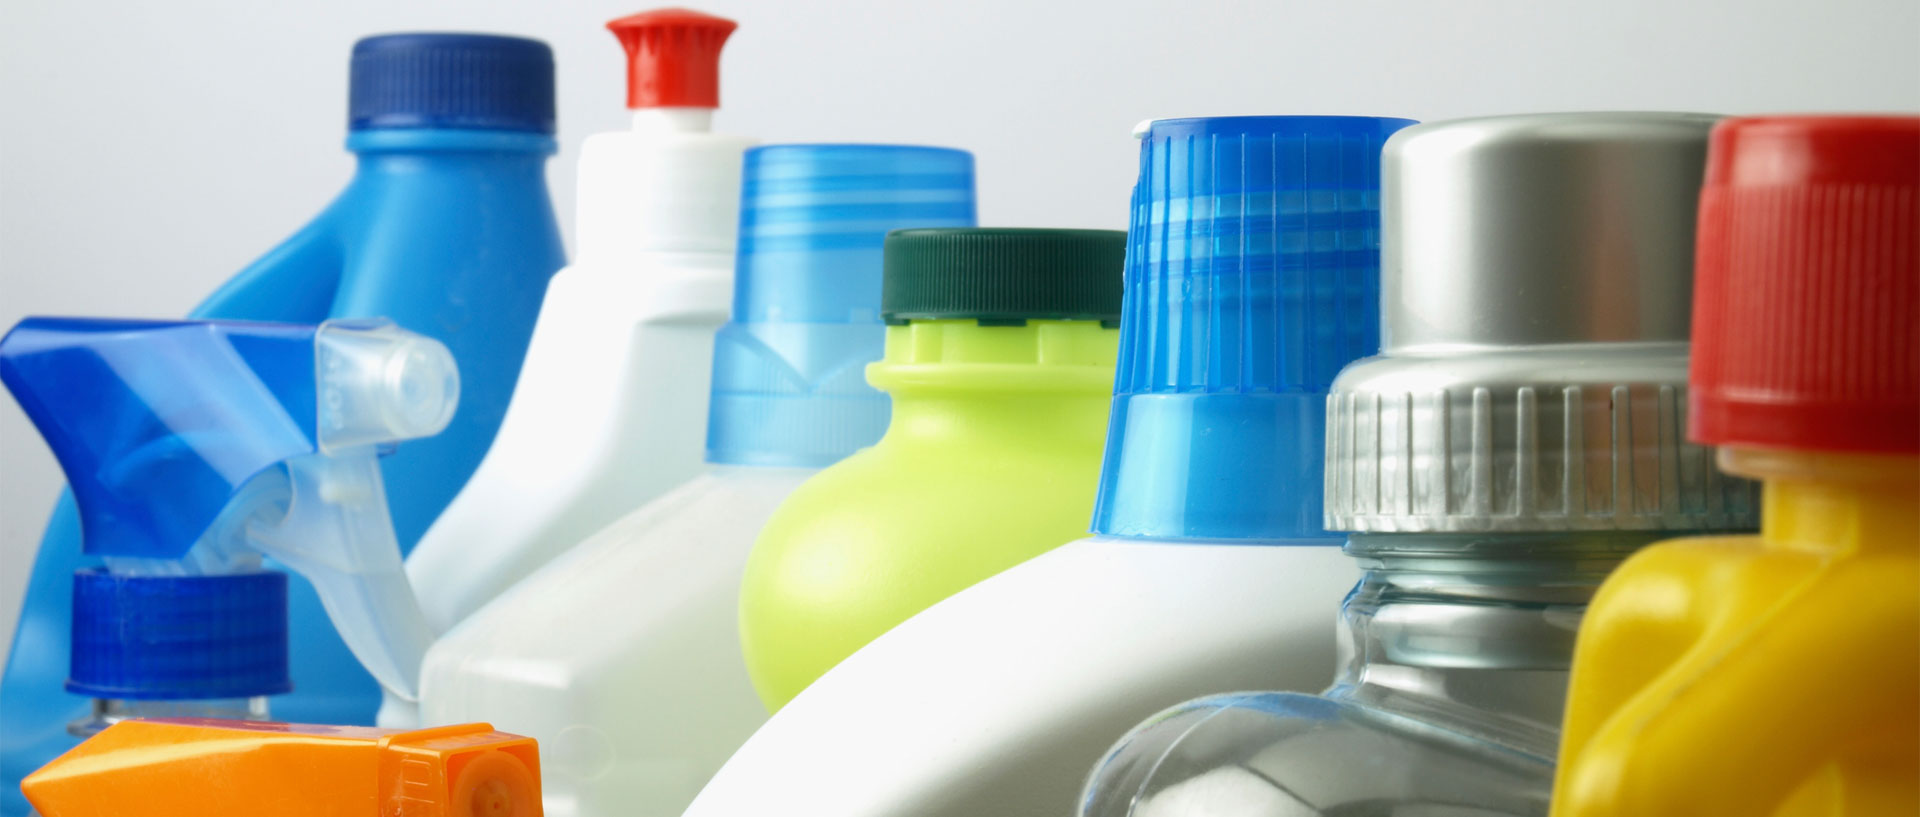 The Best Cleaning Supplies for the Job - Consumer Reports